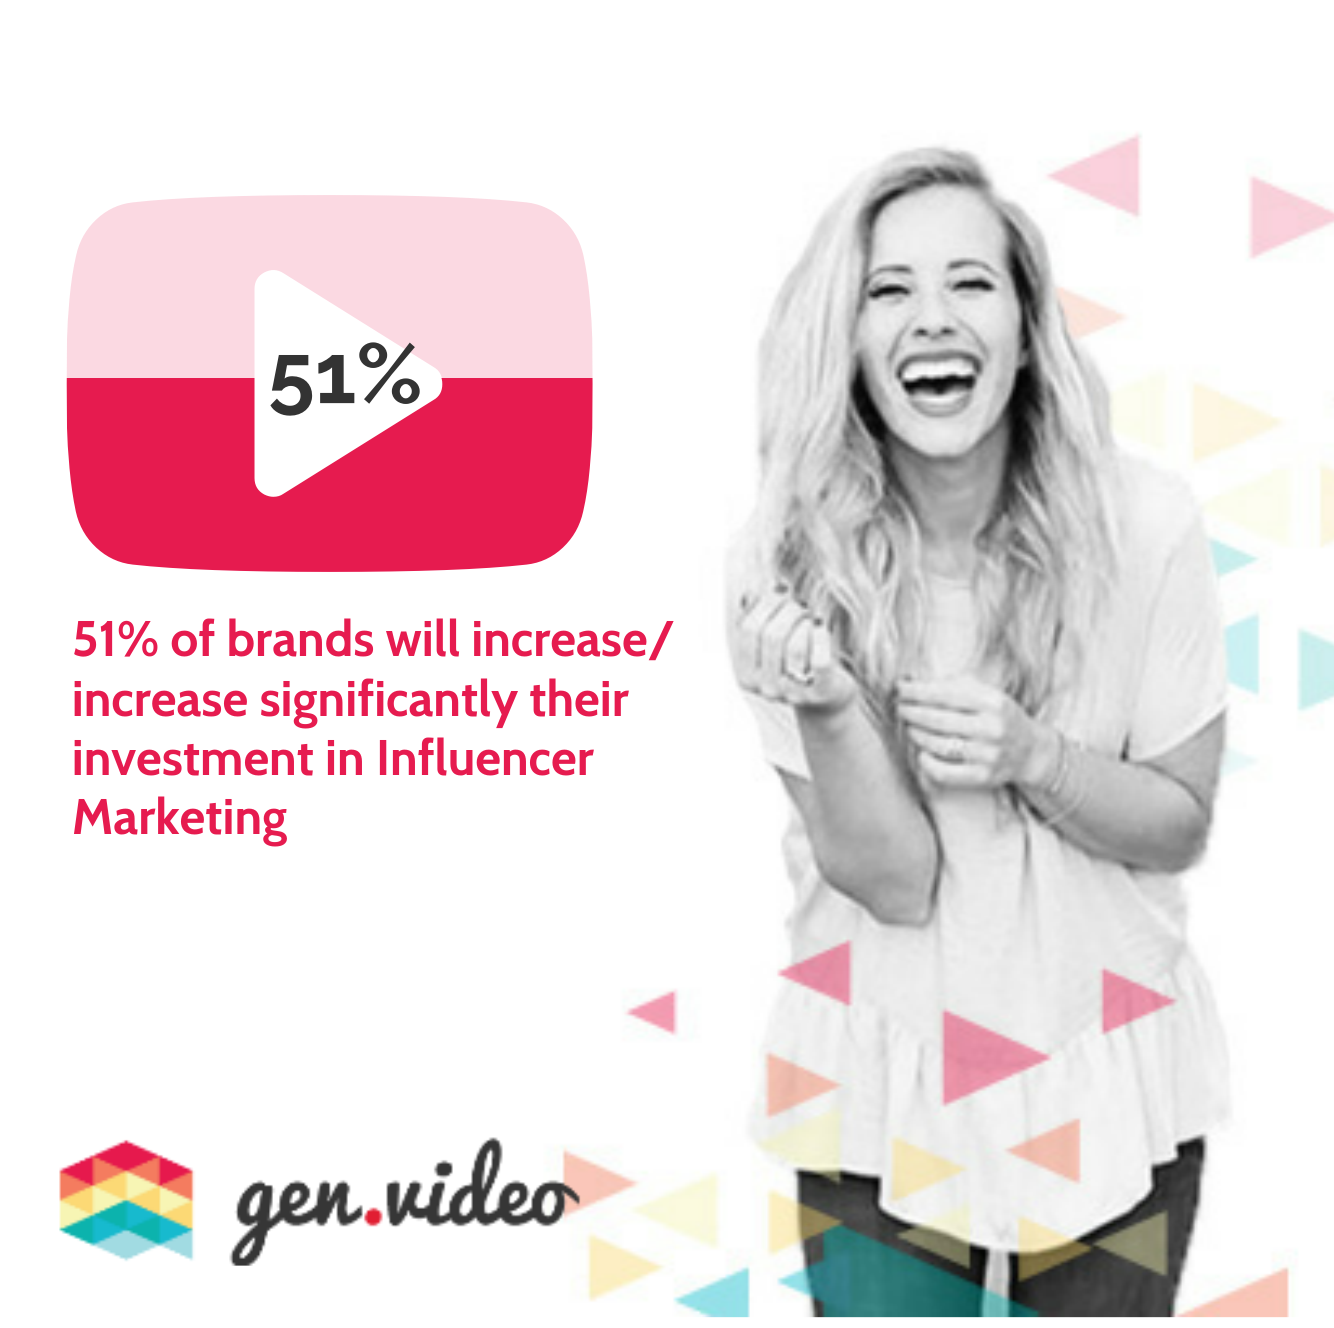 2017 TRENDS IN INFLUENCER MARKETING, PART 2 OF 3